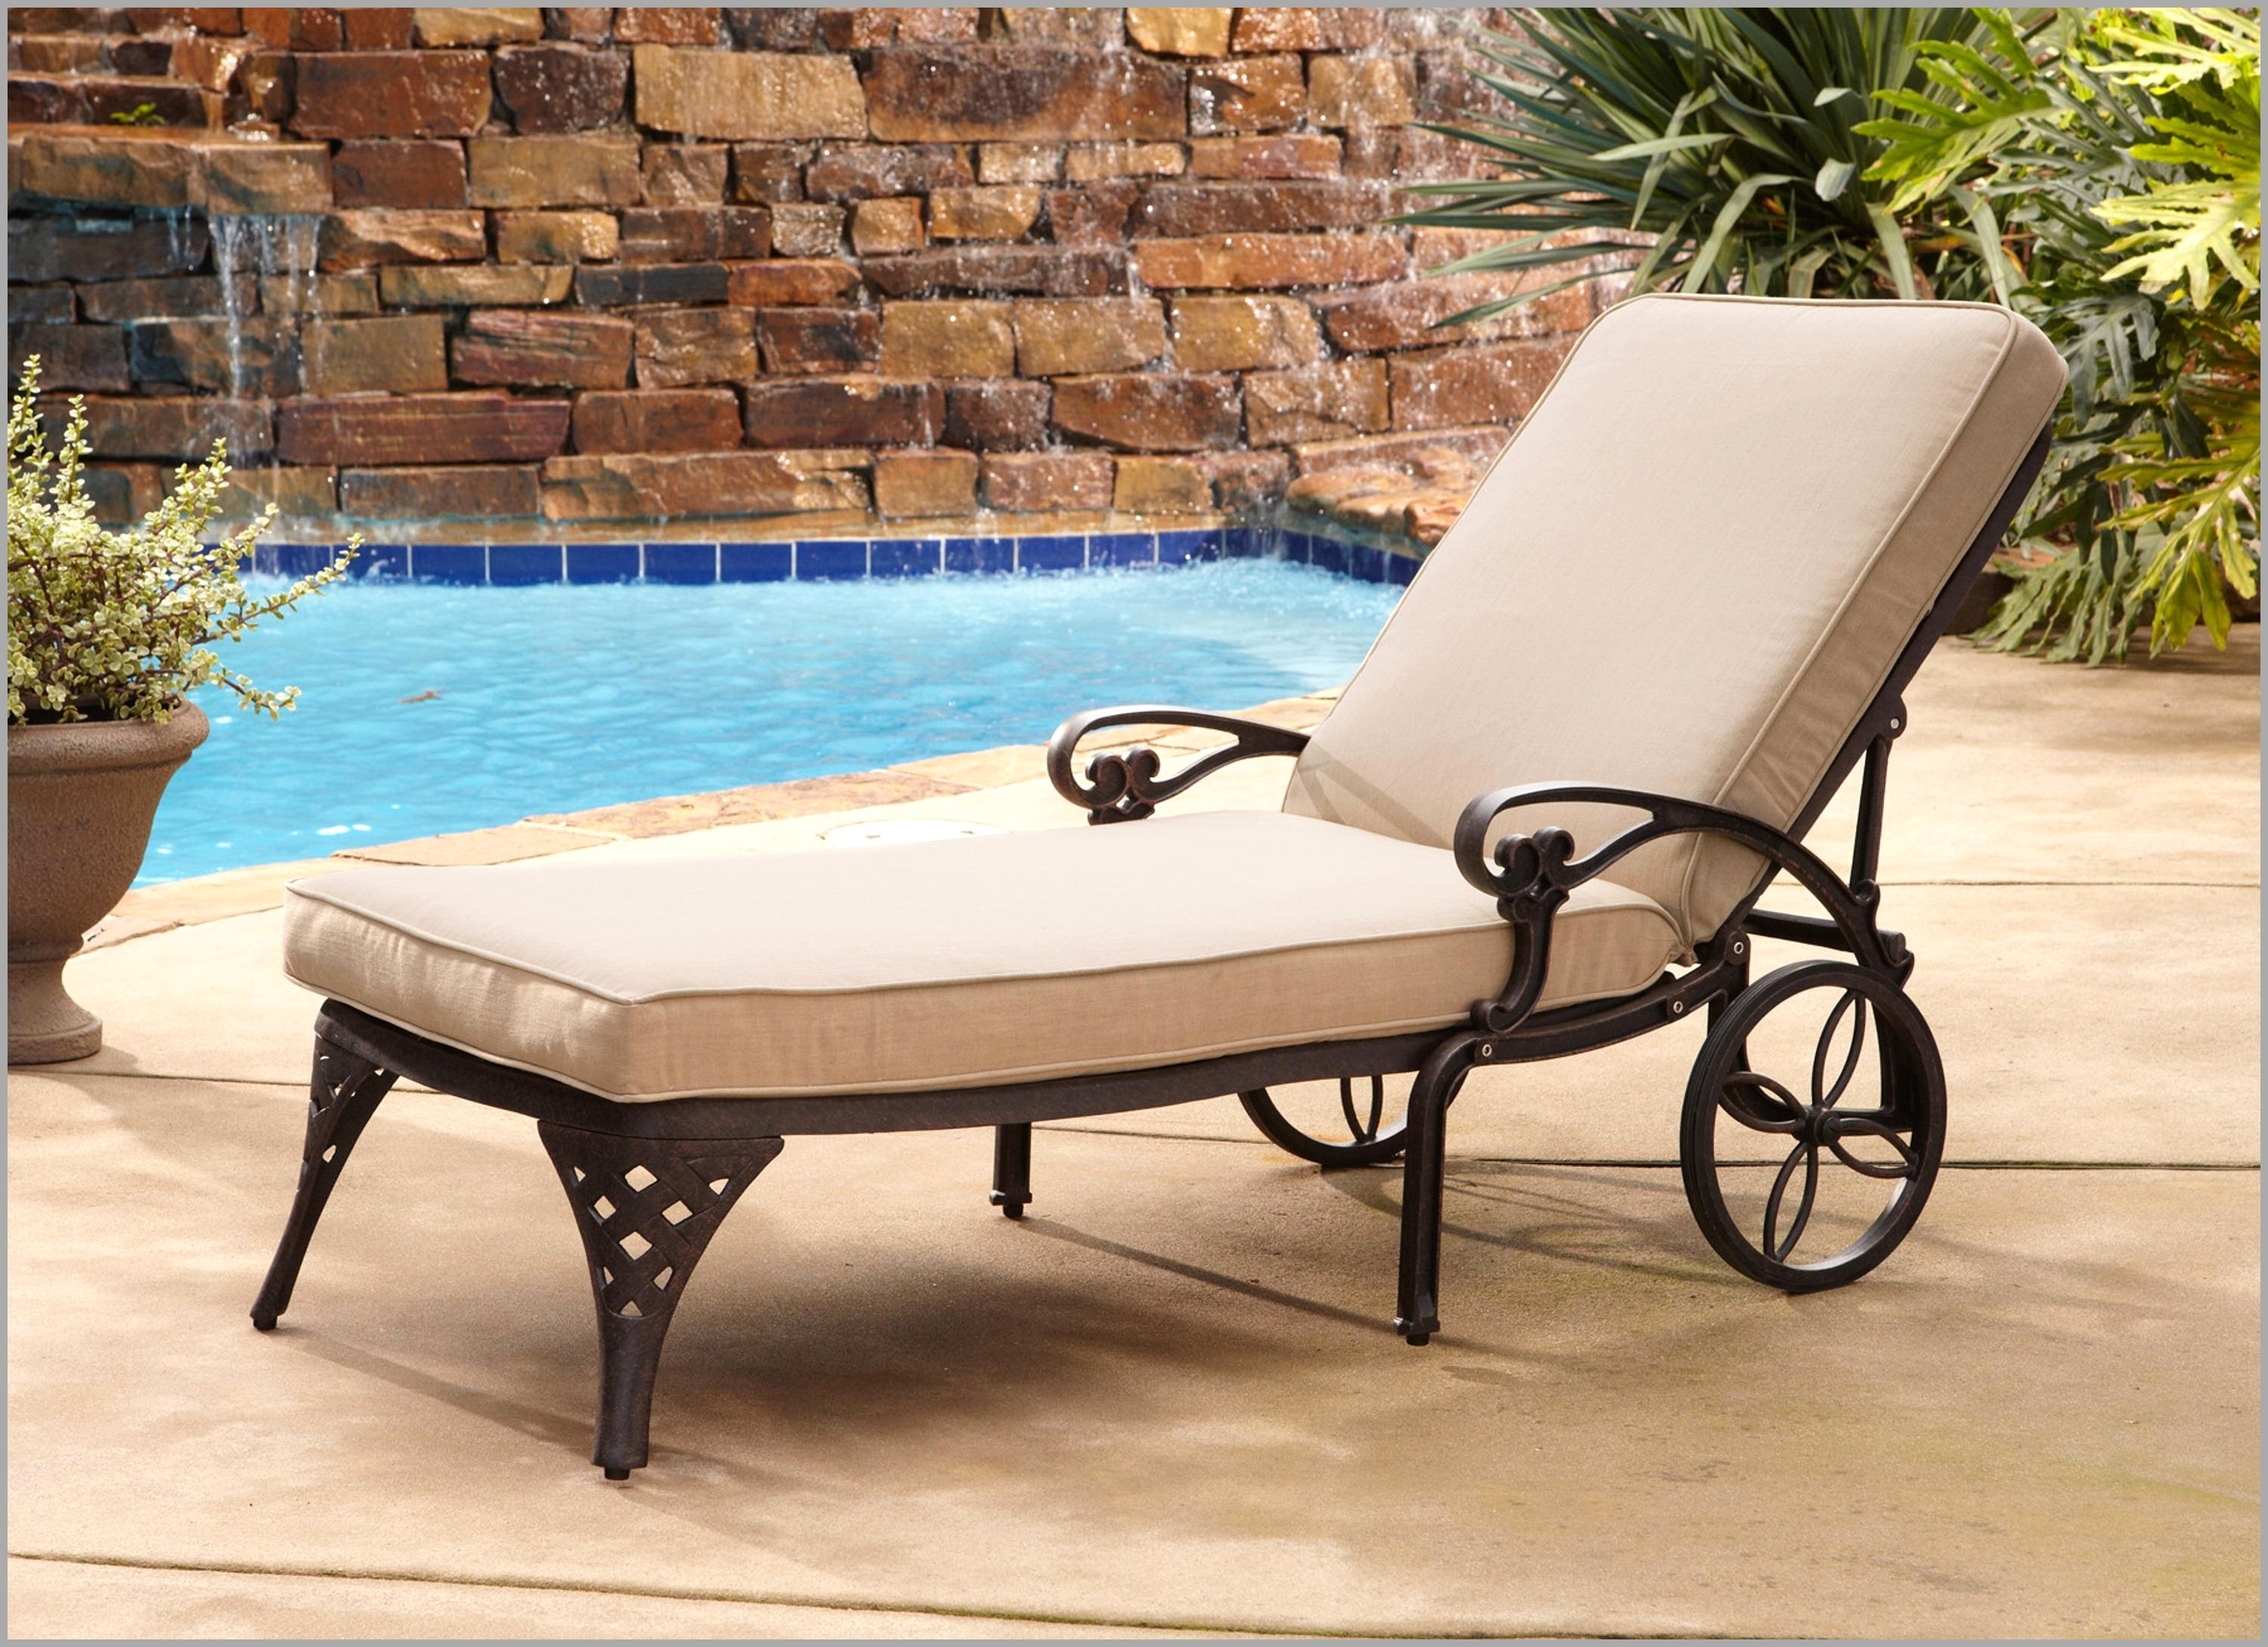 Best Poolside Lounge Chairs Accessories 20316 – Chair Ideas In Preferred Chaise Lounge Chairs For Pool Area (View 2 of 15)